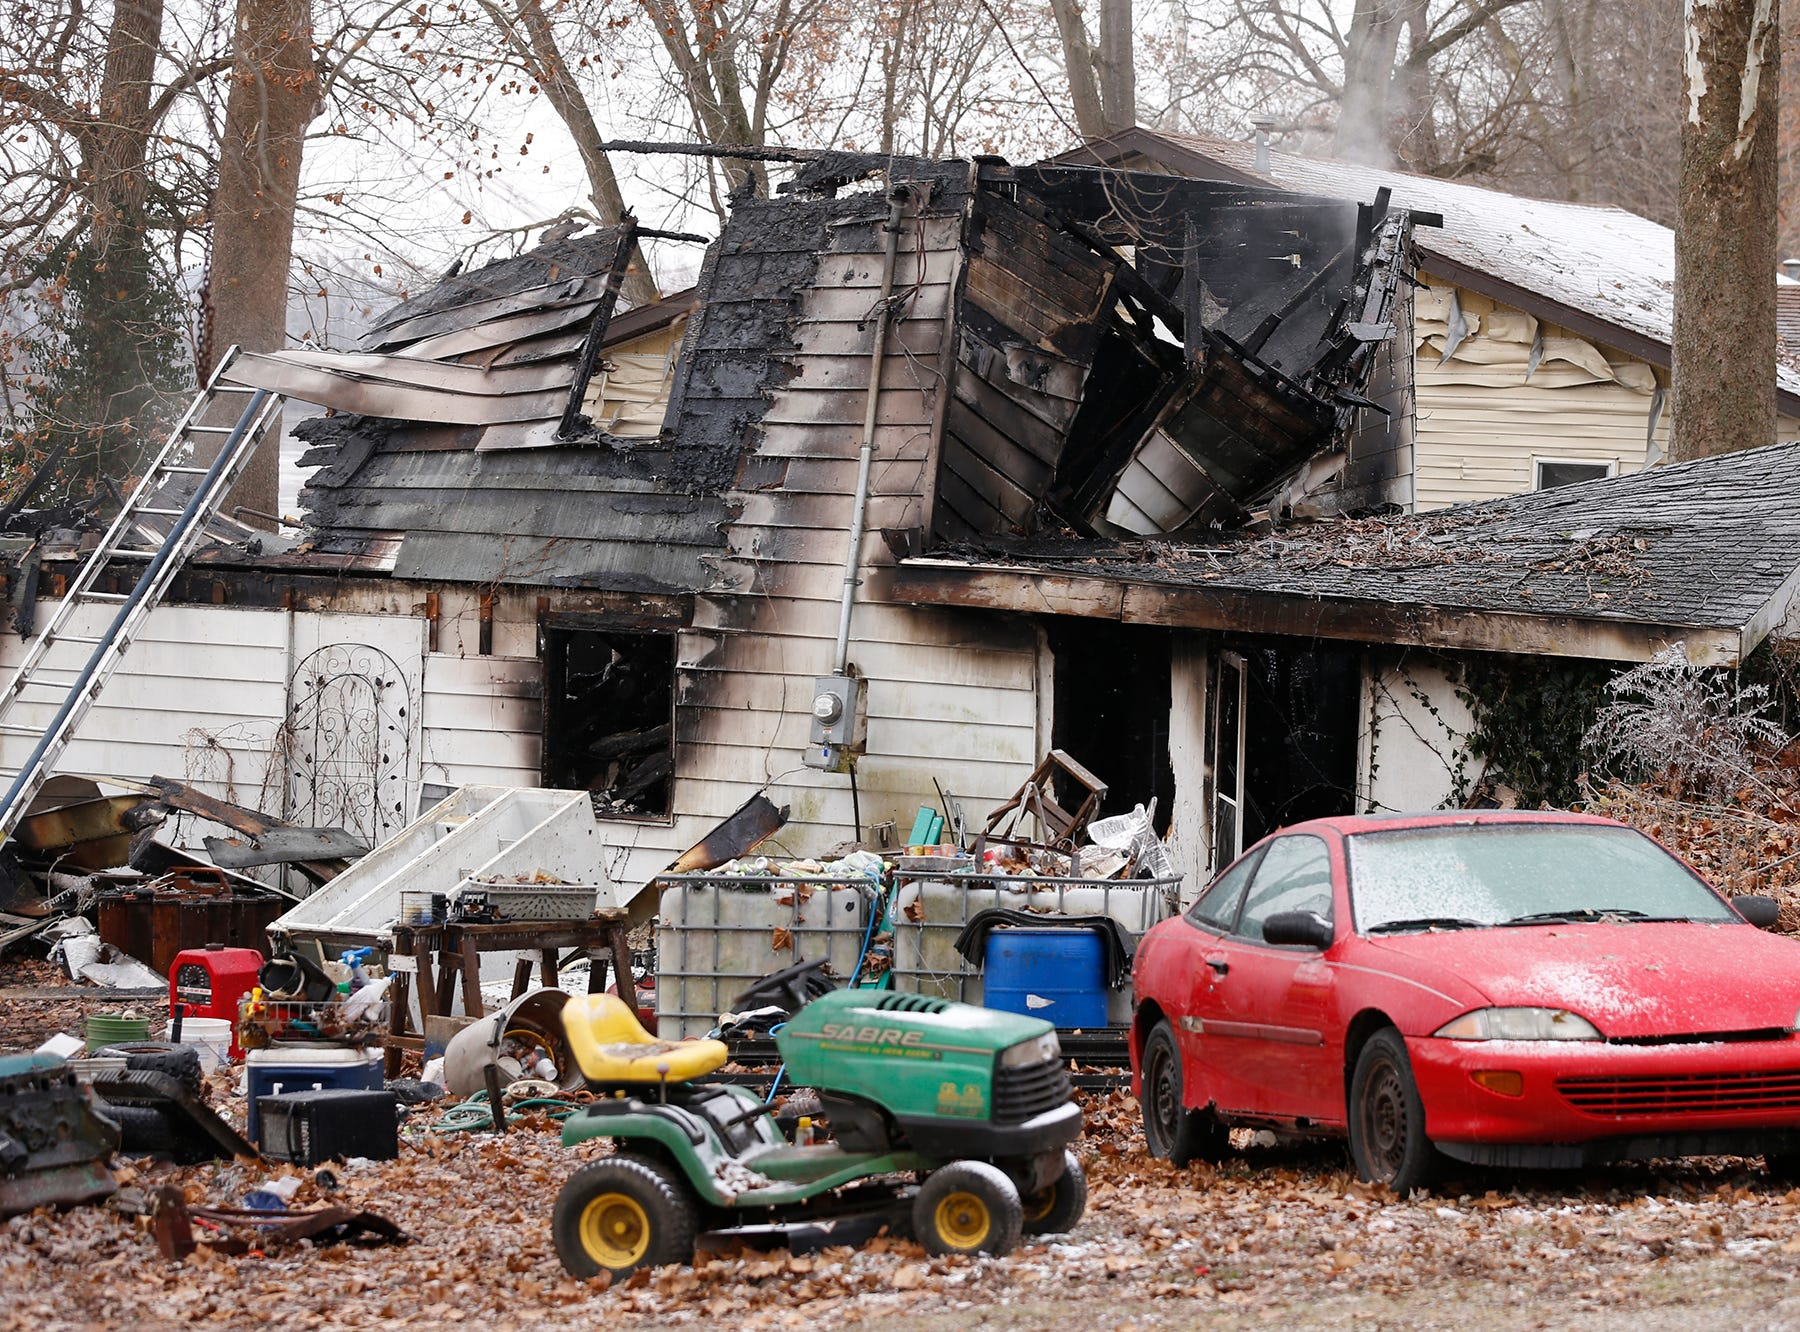 The charred structure following an early morning house fire that claimed several lives Wednesday, November 28, 2018, at 4317 Pottawatomie Road in Logansport.